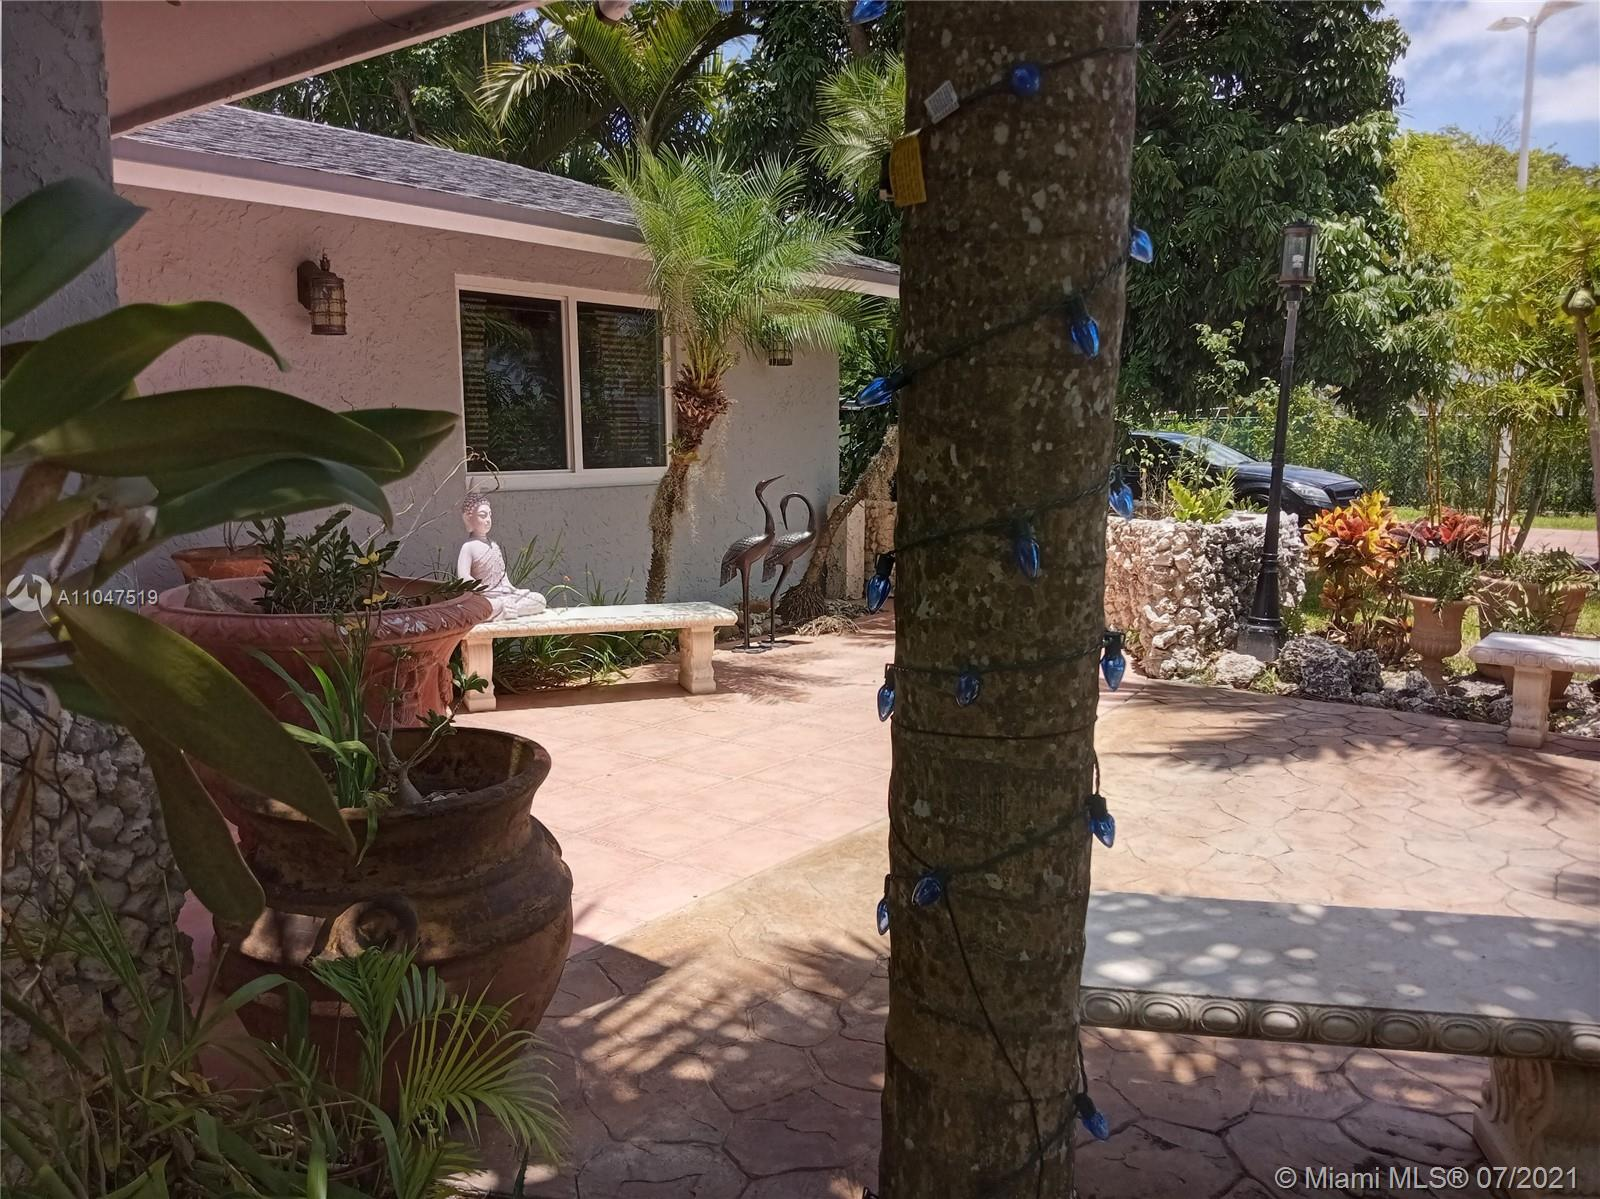 $675,000. Approx. 2,295' sq ft & more. Main house: 3 bedroom 2 bath, extra large family room, new top quality kitchen cabinets with Brazilian Granite counters, top of the line Samsung appliances, all new impact windows & doors. Plus 1 bedroom - 1 bath IN-LAW QUARTERS. New roof. Plus outdoor 1 half bathroom. Large all Teak wood Tikihut - bar with spacious sink & counters, fans, & plenty of lighting. Property has privately owned tall special lighting throughout, automatic gate, extra long driveways & walkways, new septic, new water well equipment, 16 cameras surveillance,. Expect low property taxes as Koi pond, & the variety of fruit trees have been applied for Agricultural Class., Mature greenery.